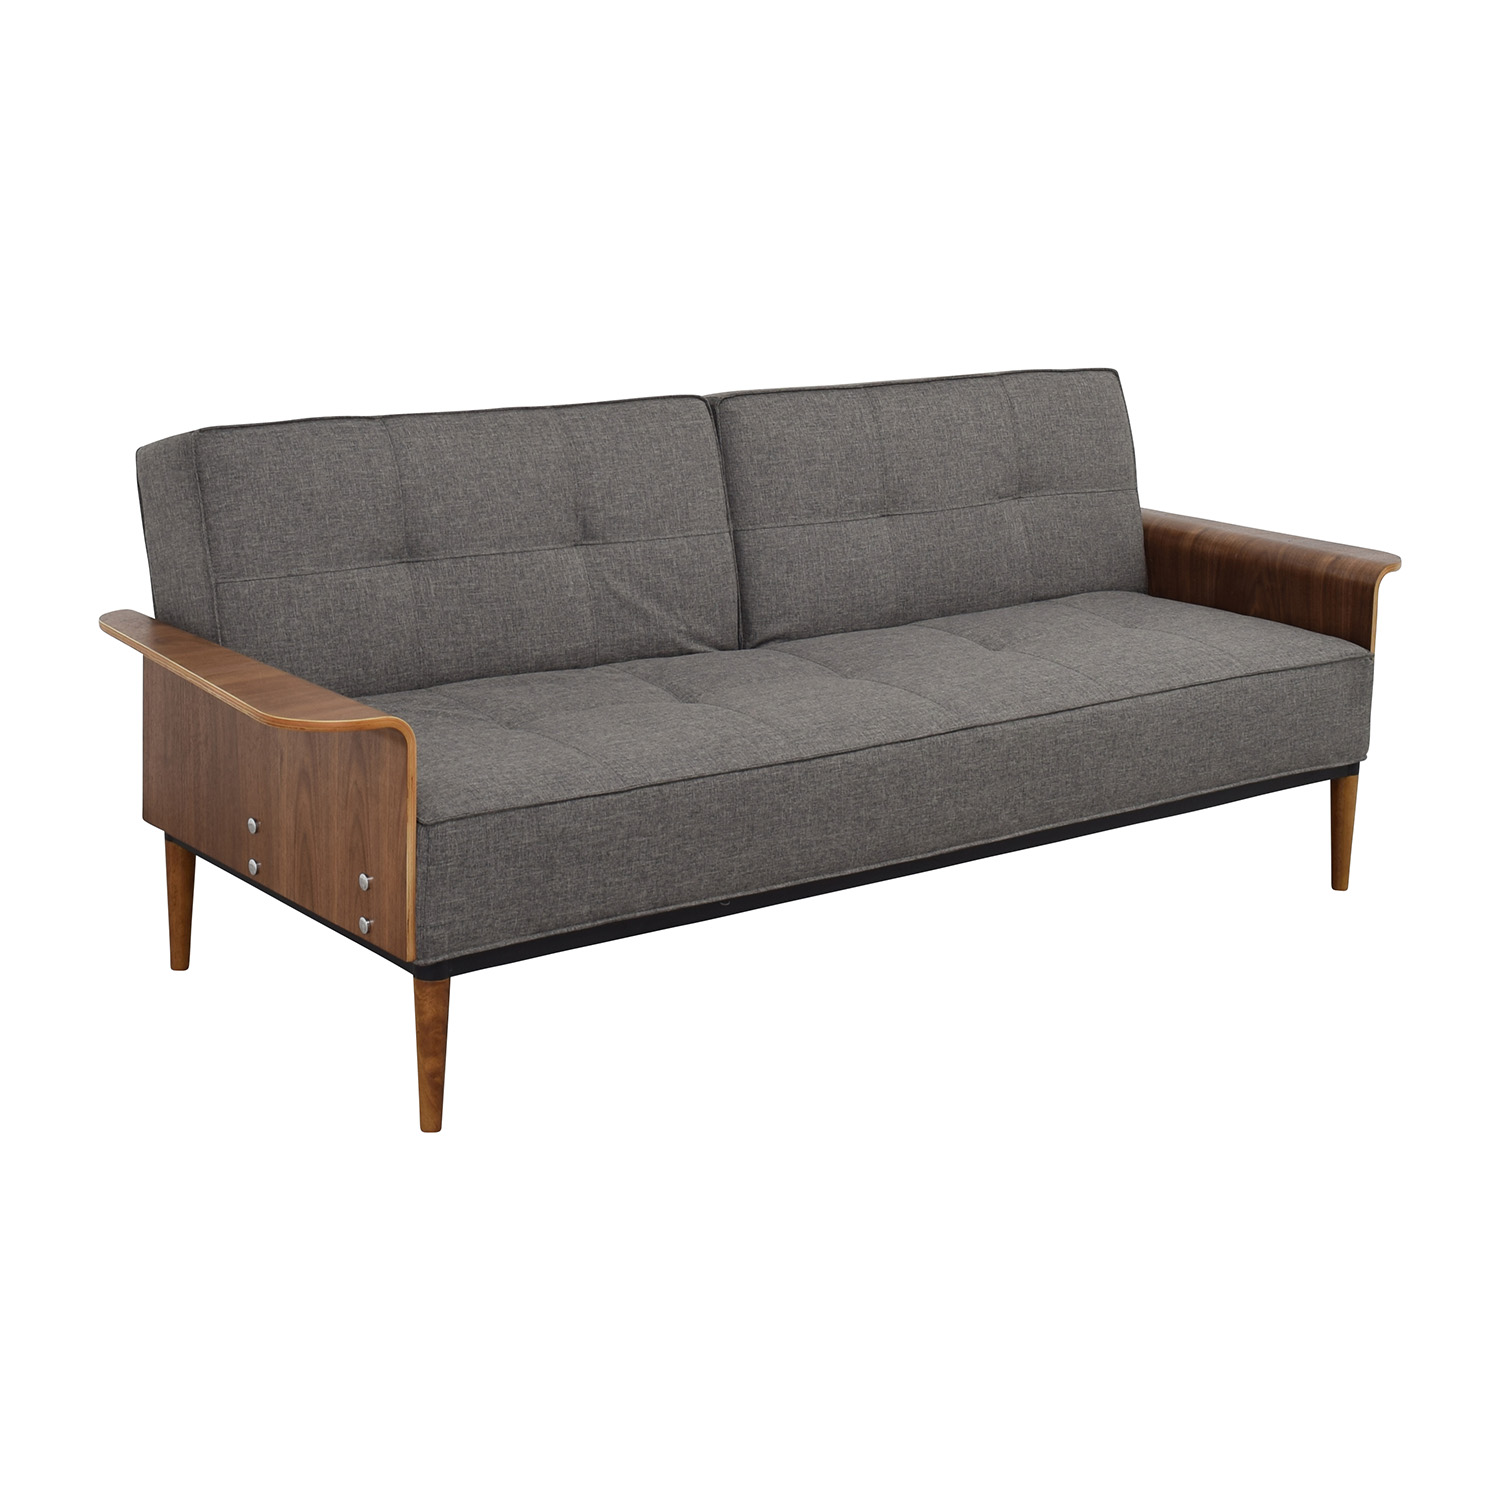 buy InMod InMod Bjorg Tufted Dark Grey Sofabed online